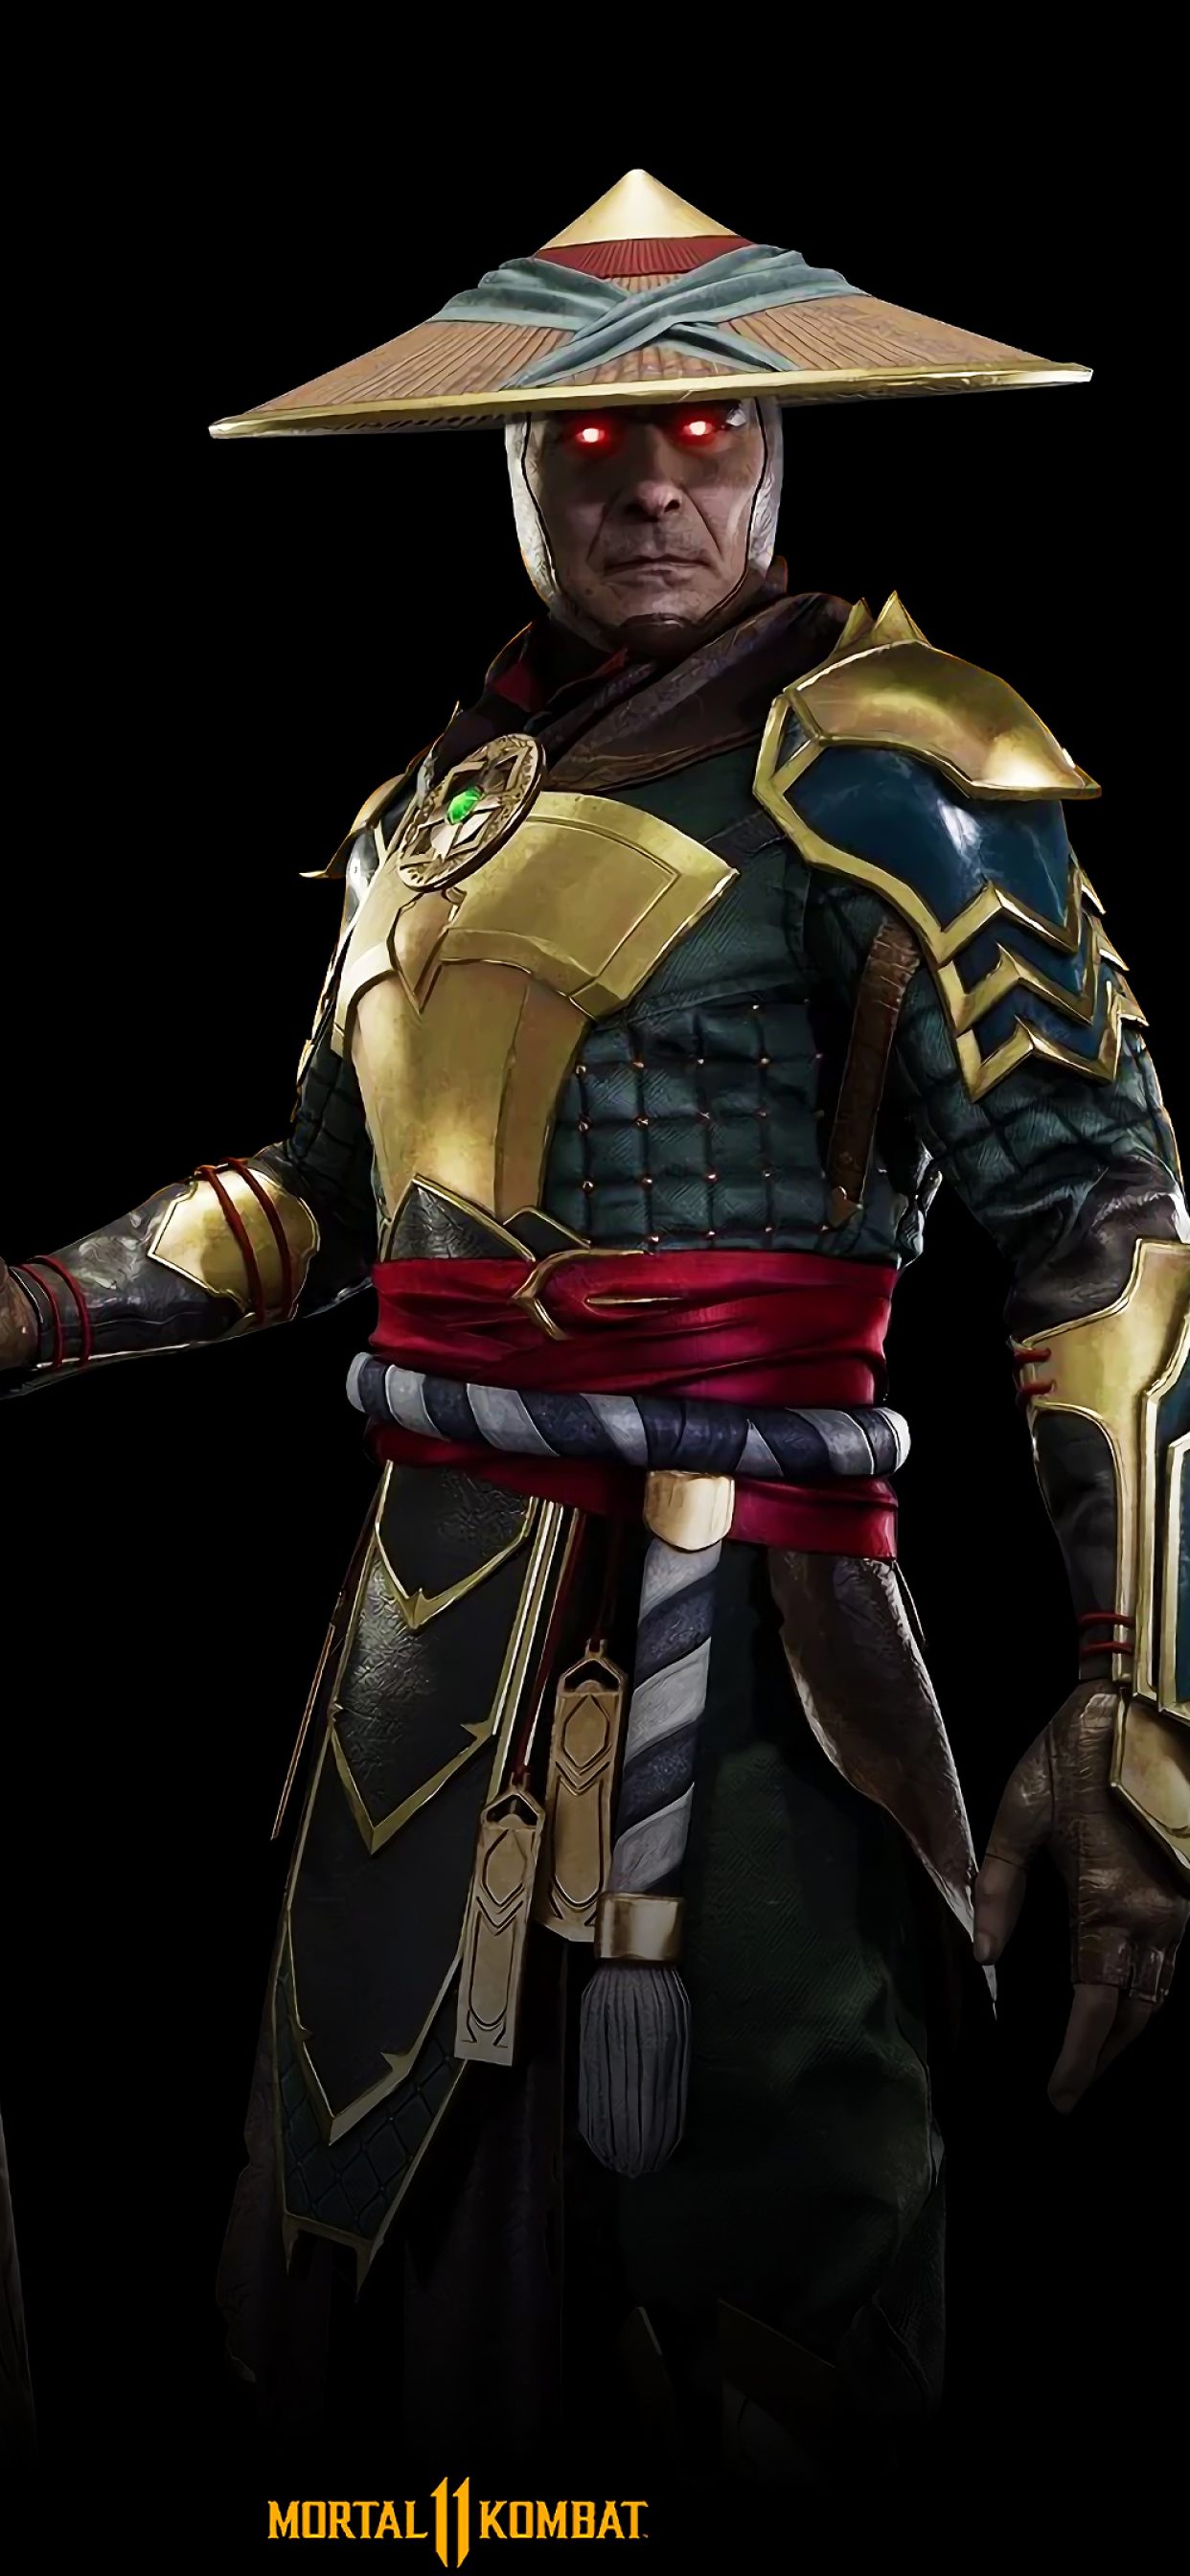 1242x2688 Raiden Mortal Kombat 11 4k Iphone Xs Max Wallpaper Hd Games 4k Wallpapers Images Photos And Background